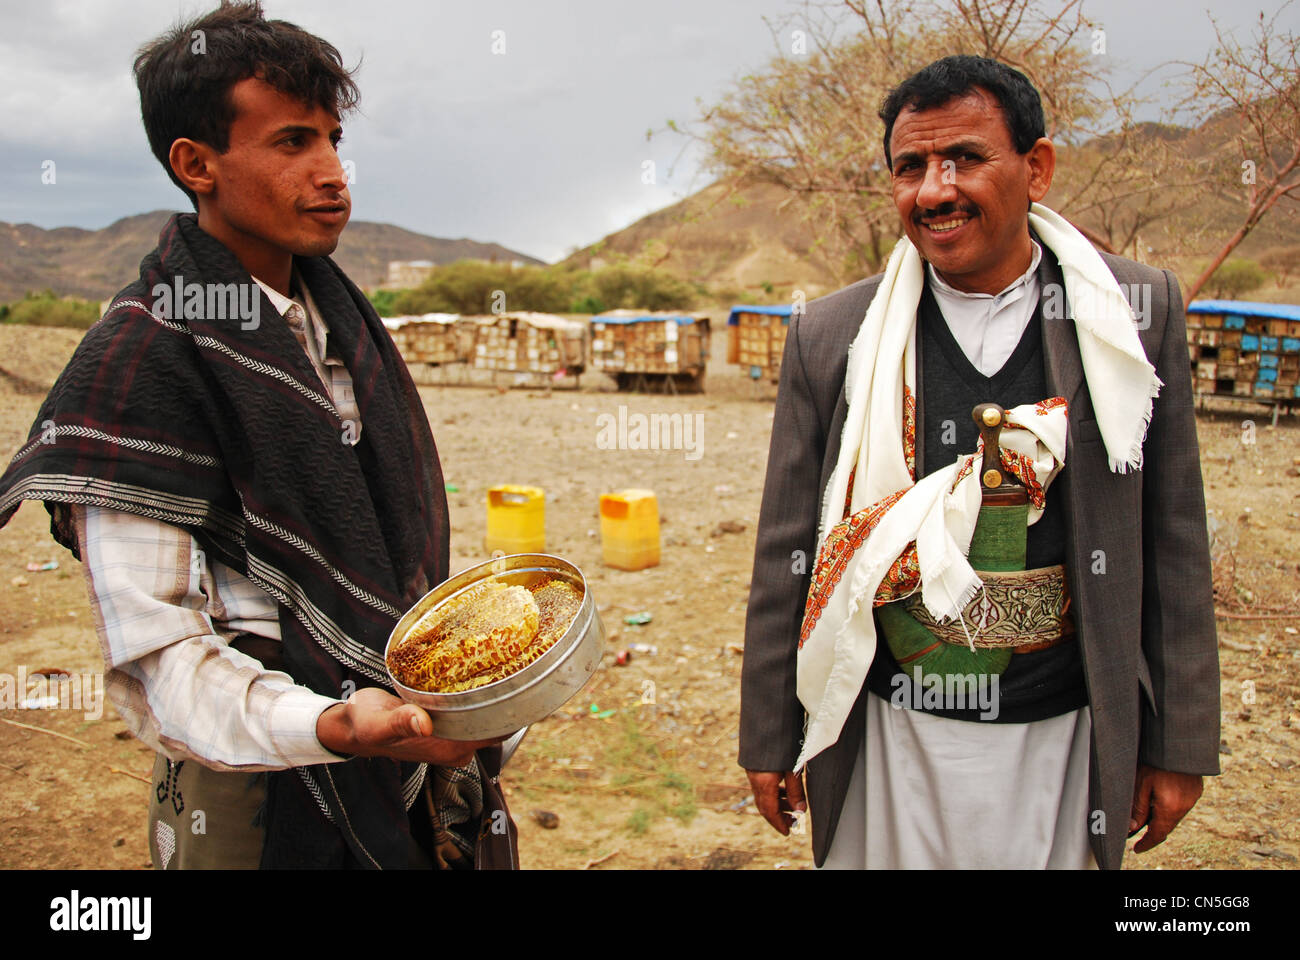 Yemen, Inland, traditional dressed man looking honeycomb seller with beehives locker in the background - Stock Image